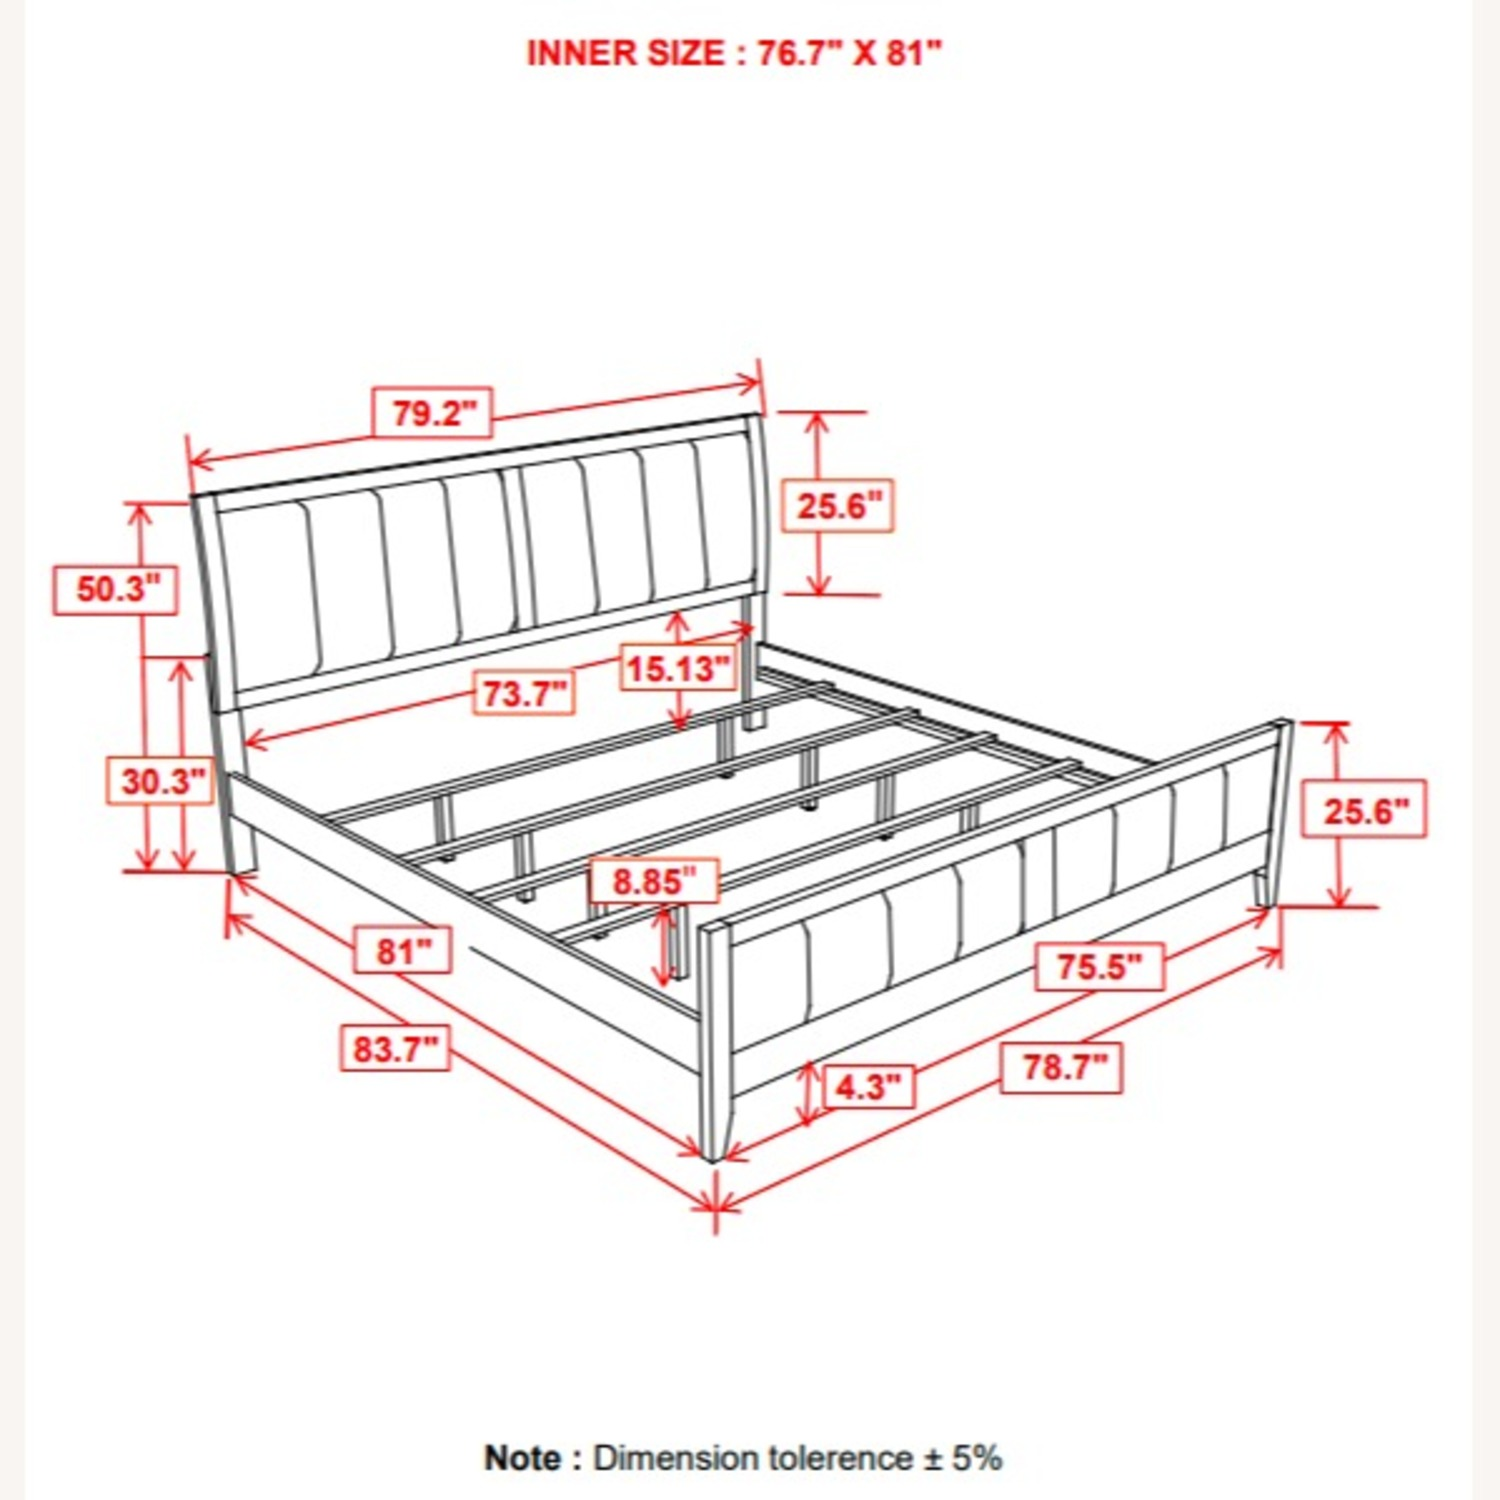 King Bed In Cappuccino Finish W/ Black Fabric - image-2